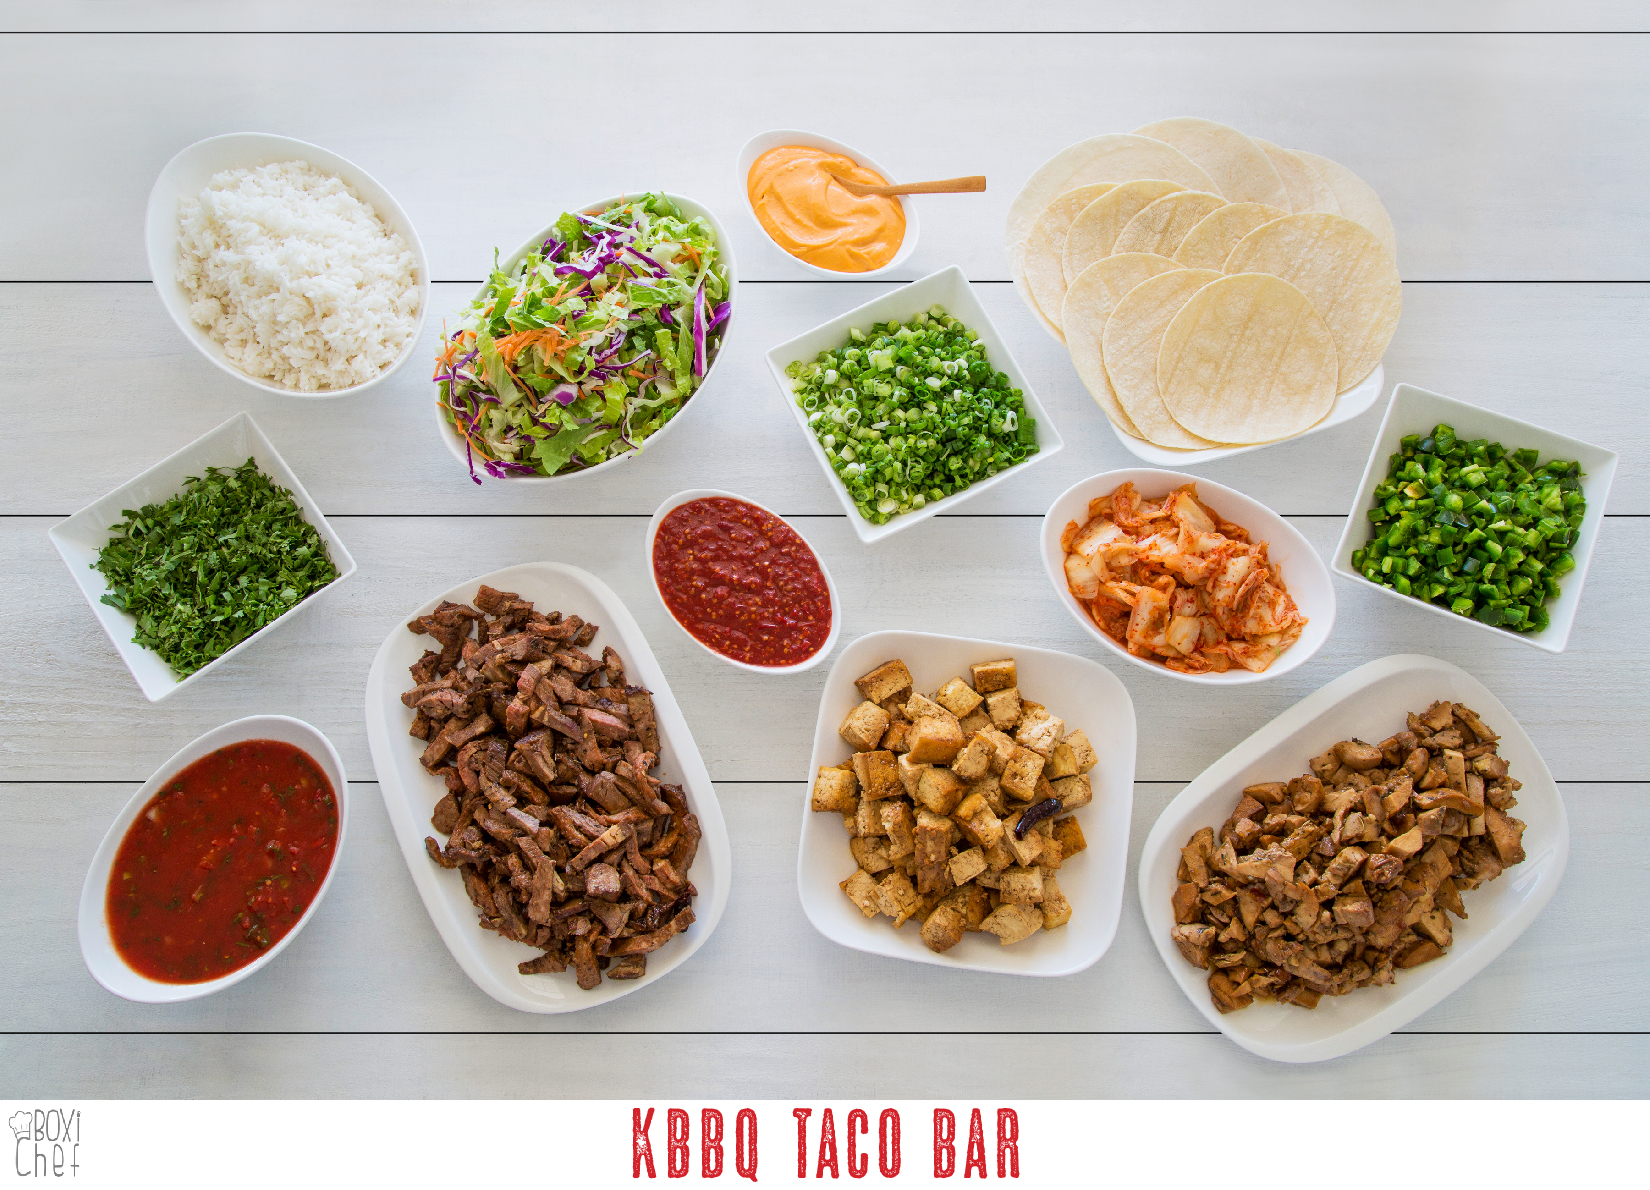 KBBQ Taco Bar - Bird Eye-01.jpg